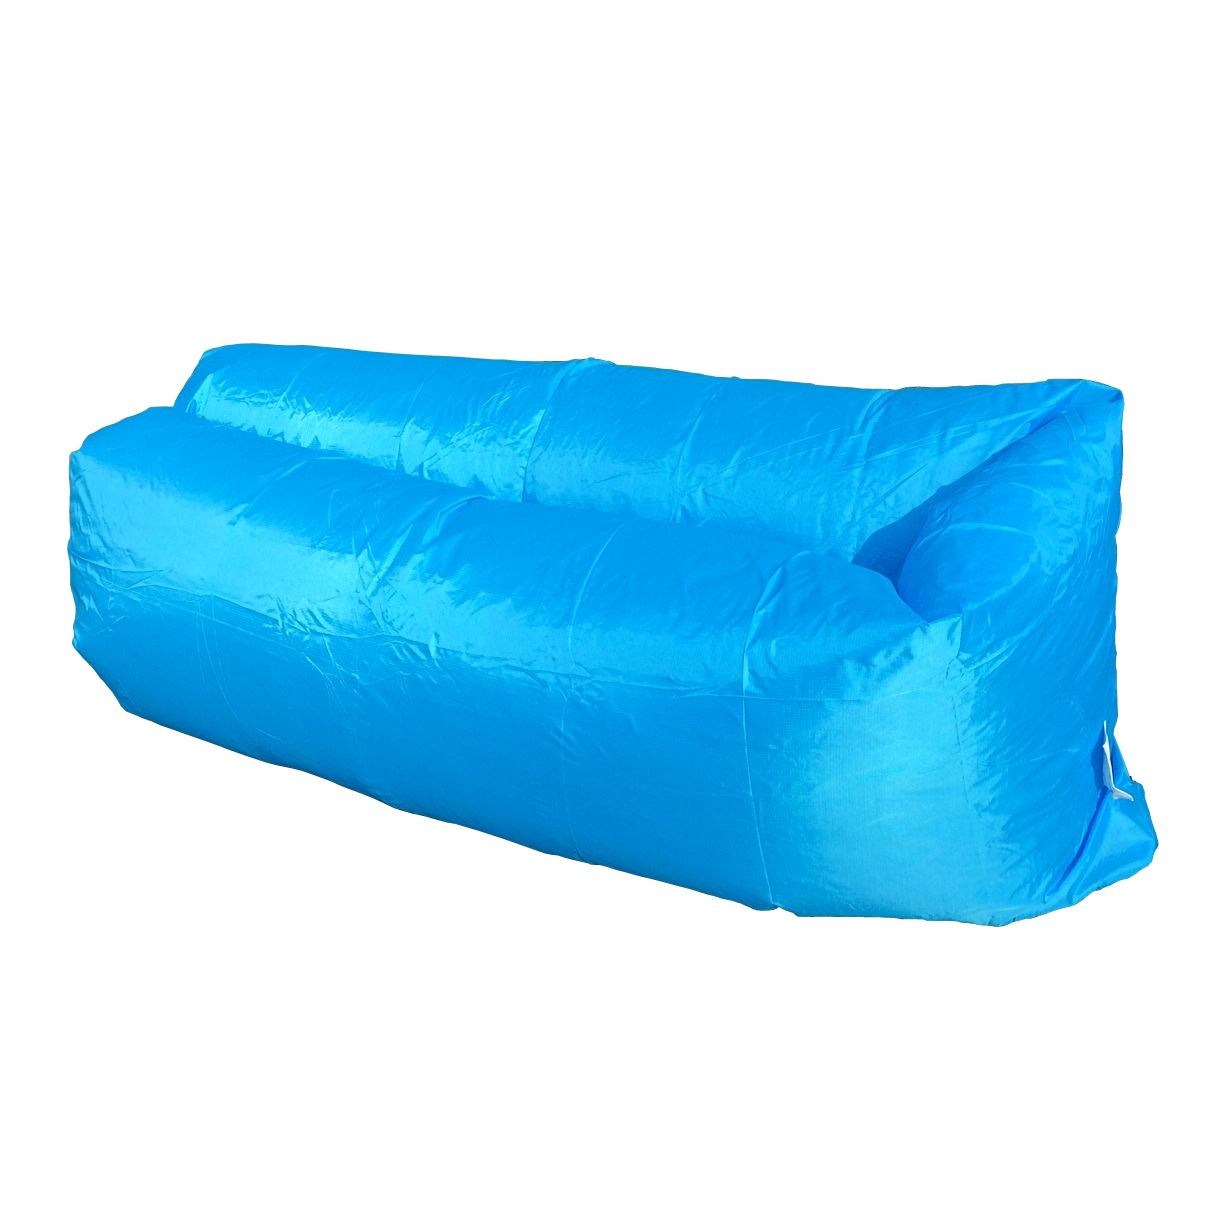 Inflatable Sofa Air Bed Lounger: Inflatable Sofa Chair Air Bed Luxury Seat Camping Festival